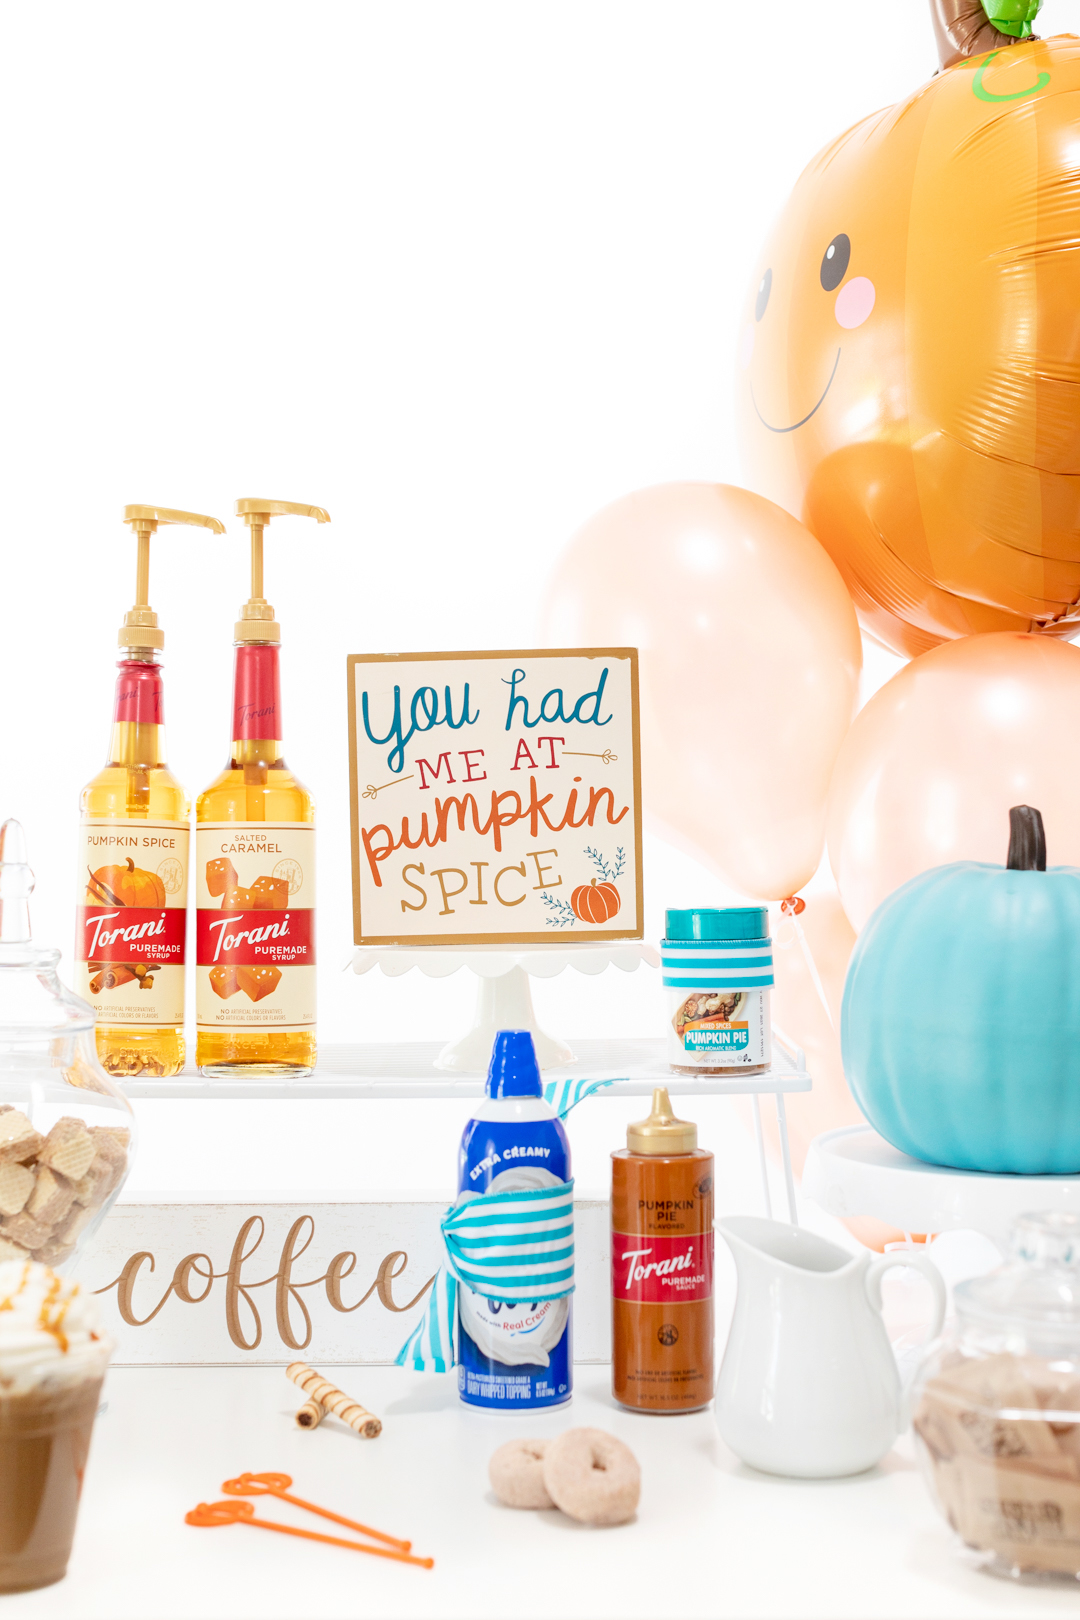 pretty iced coffee bar with syrups, signs, whipped cream, sauces and balloons to decorate.